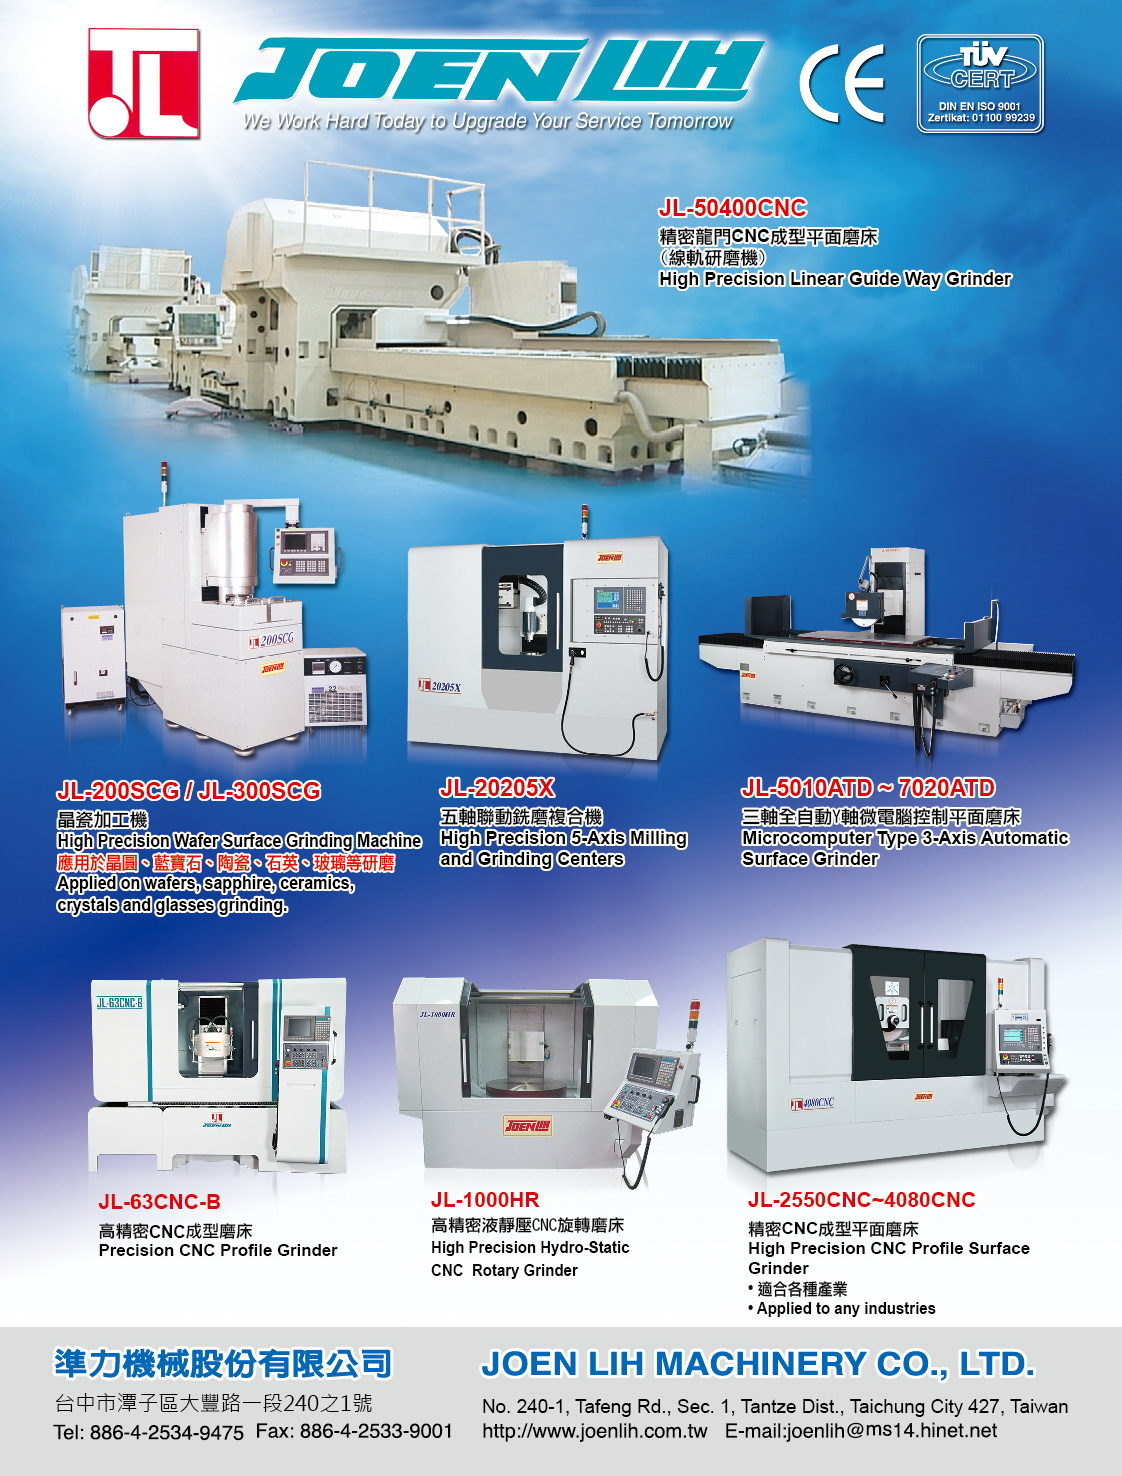 JOEN LIH MACHINERY CO., LTD.